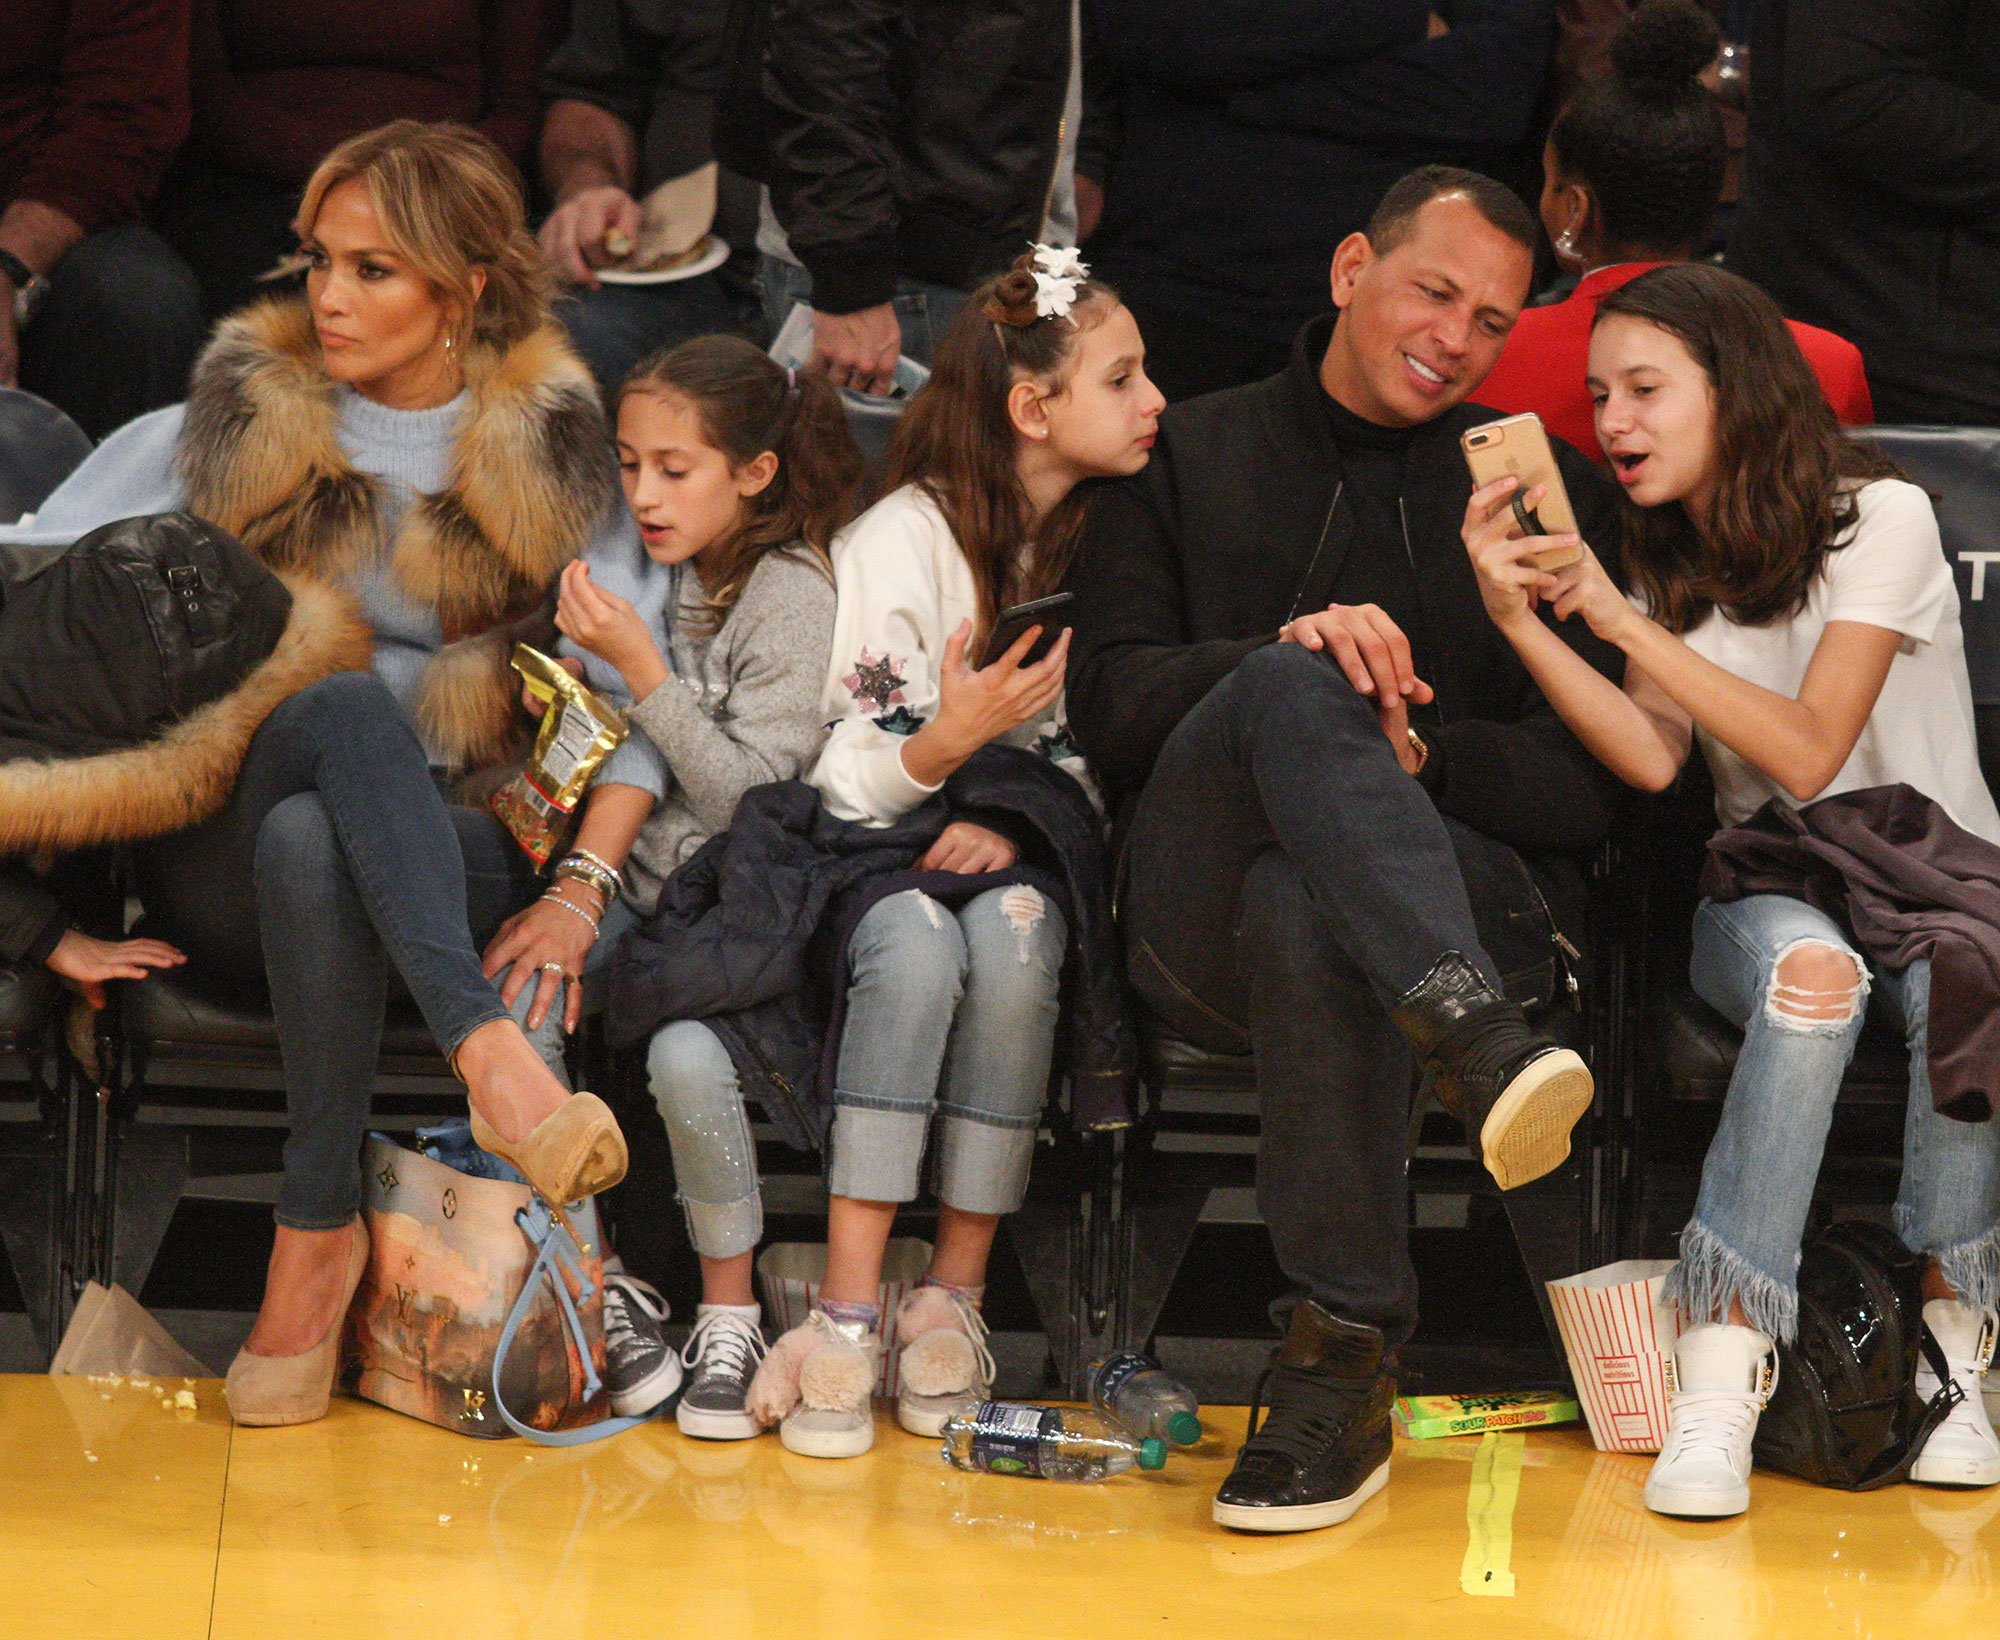 J Lo and A-Rod with the kids love the Lakers